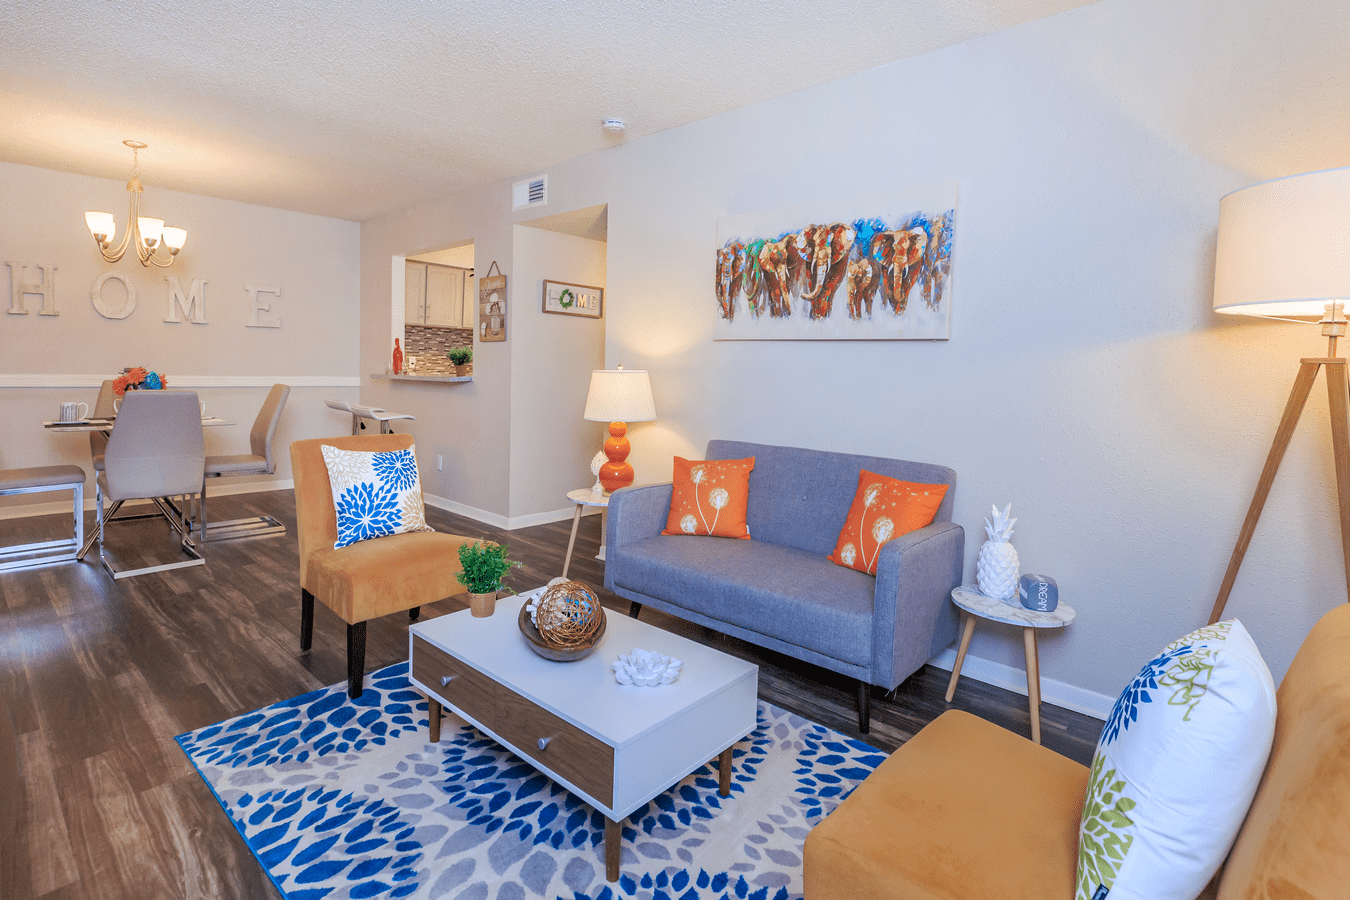 1 Bedroom 1 Bathroom Apartment for rent at Envue Square in Houston, TX